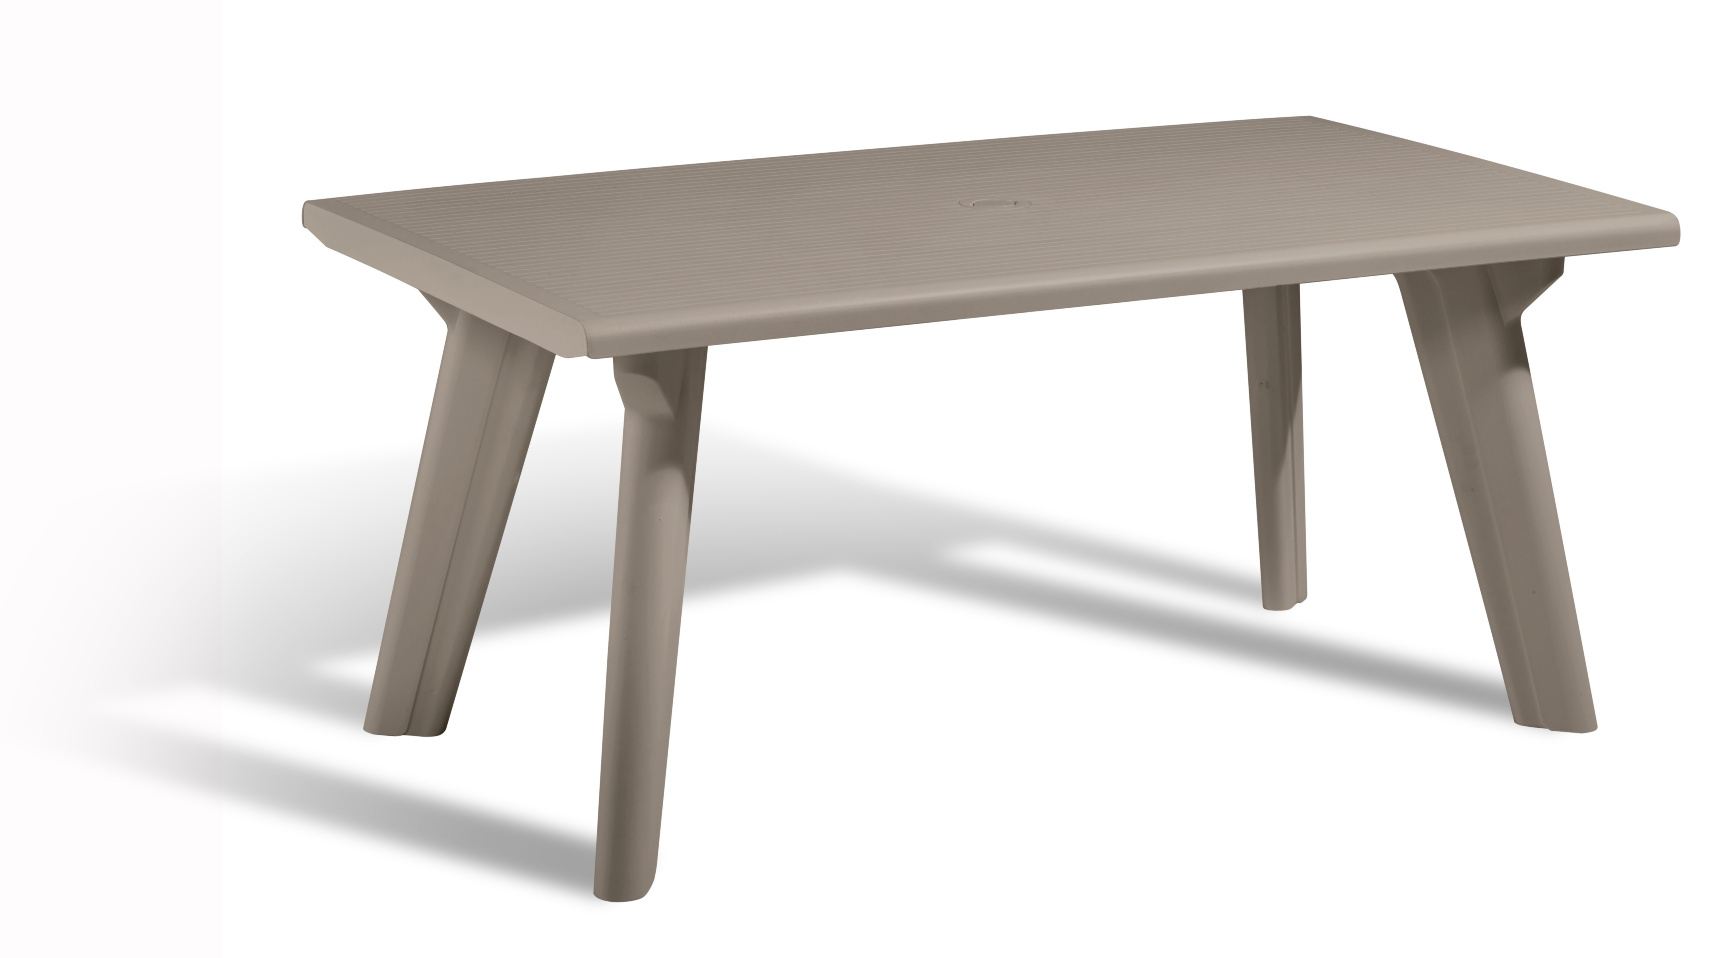 Tables De Jardin - Allibert pour Table De Jardin Allibert